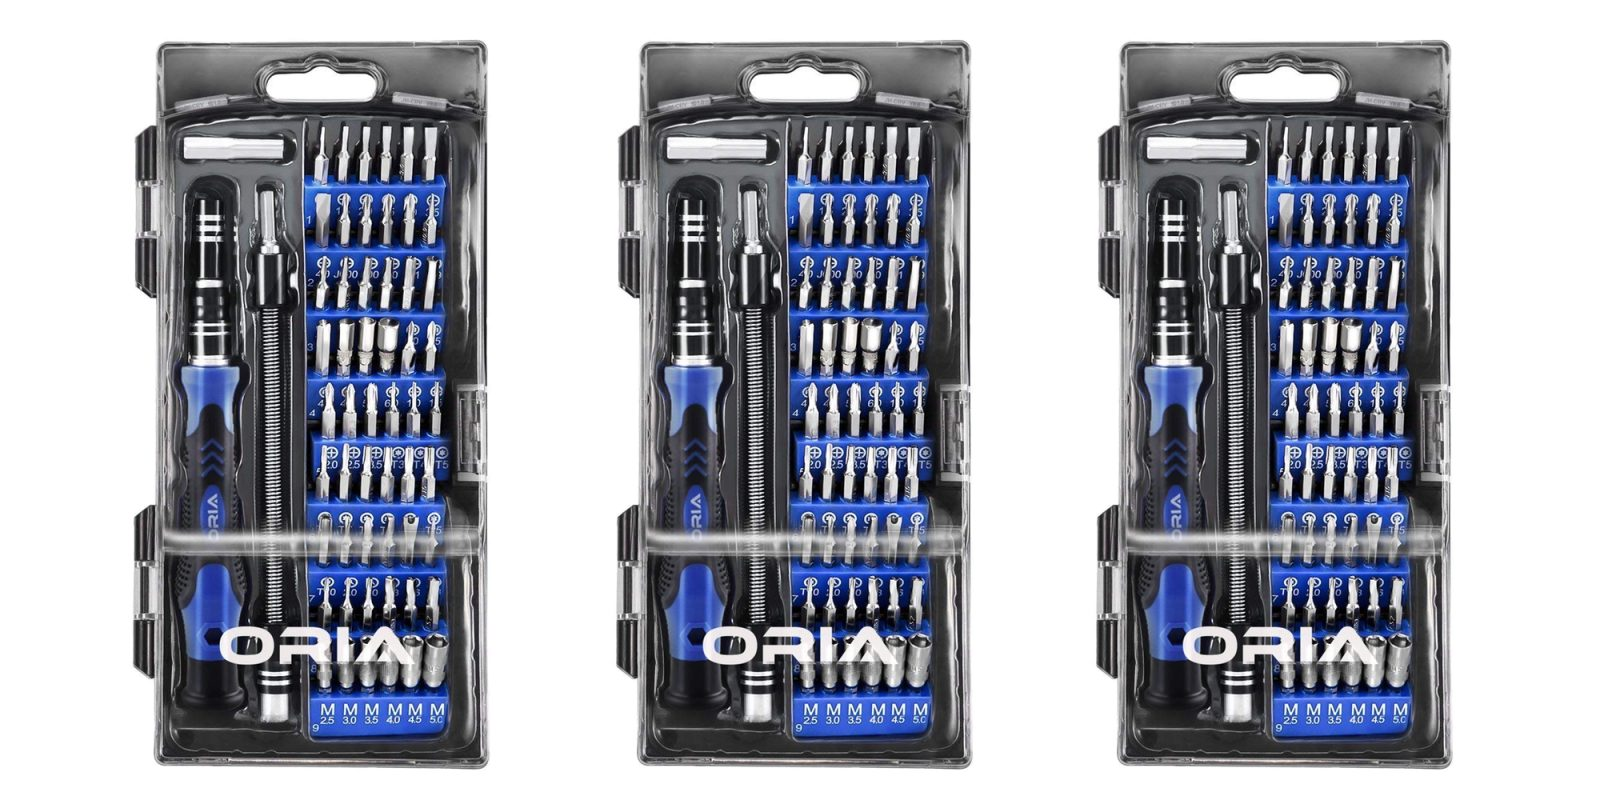 This 60-in-1 toolkit is a must-have for iPhone or Mac repair at just $11